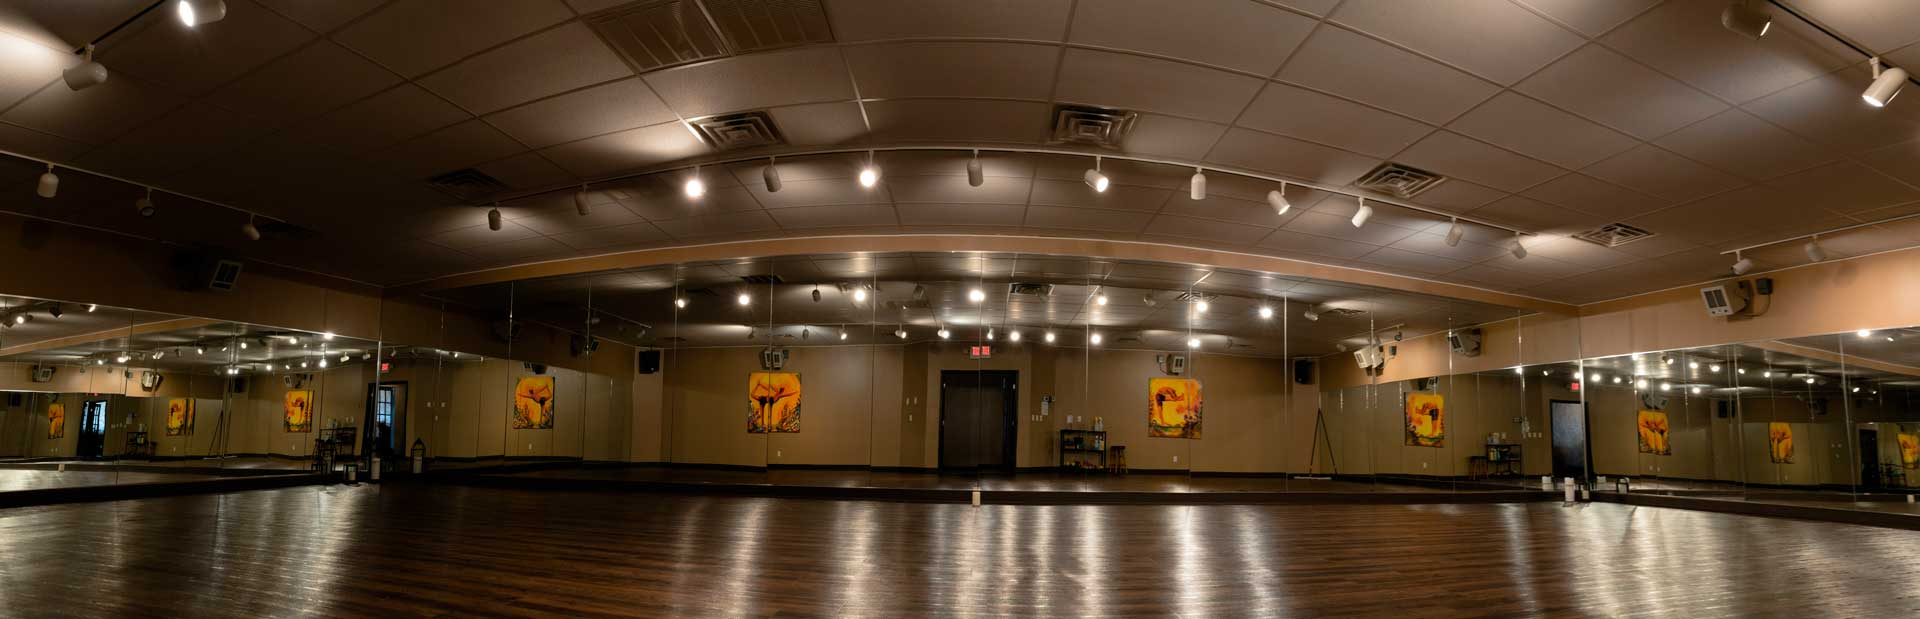 Picture of the yoga studio at Sumits Hot Yoga in Springfield, MO